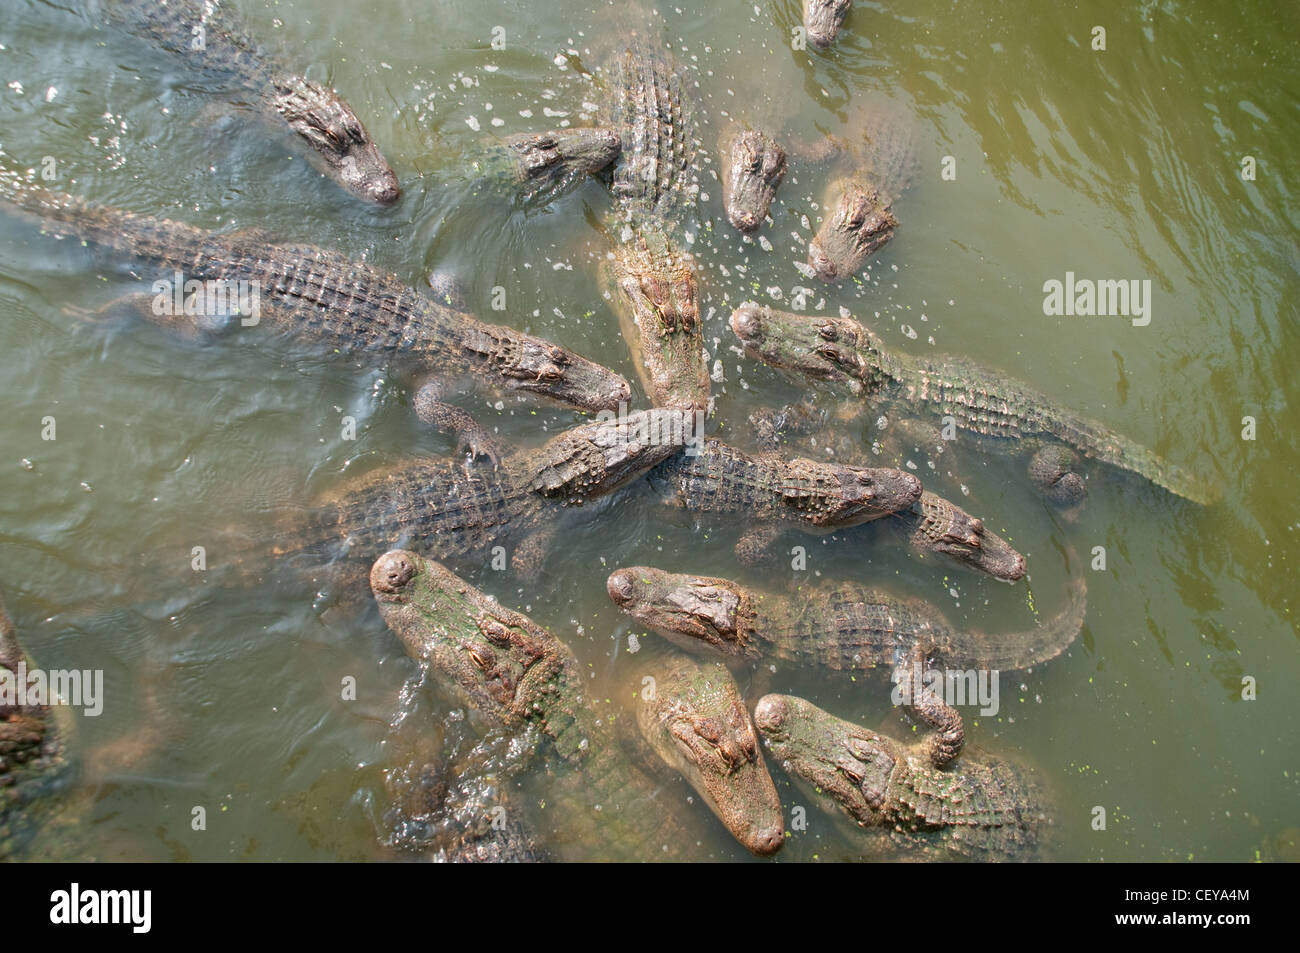 A group of alligators feeding at a zoological garden near Shreveport, in northern Louisiana. - Stock Image